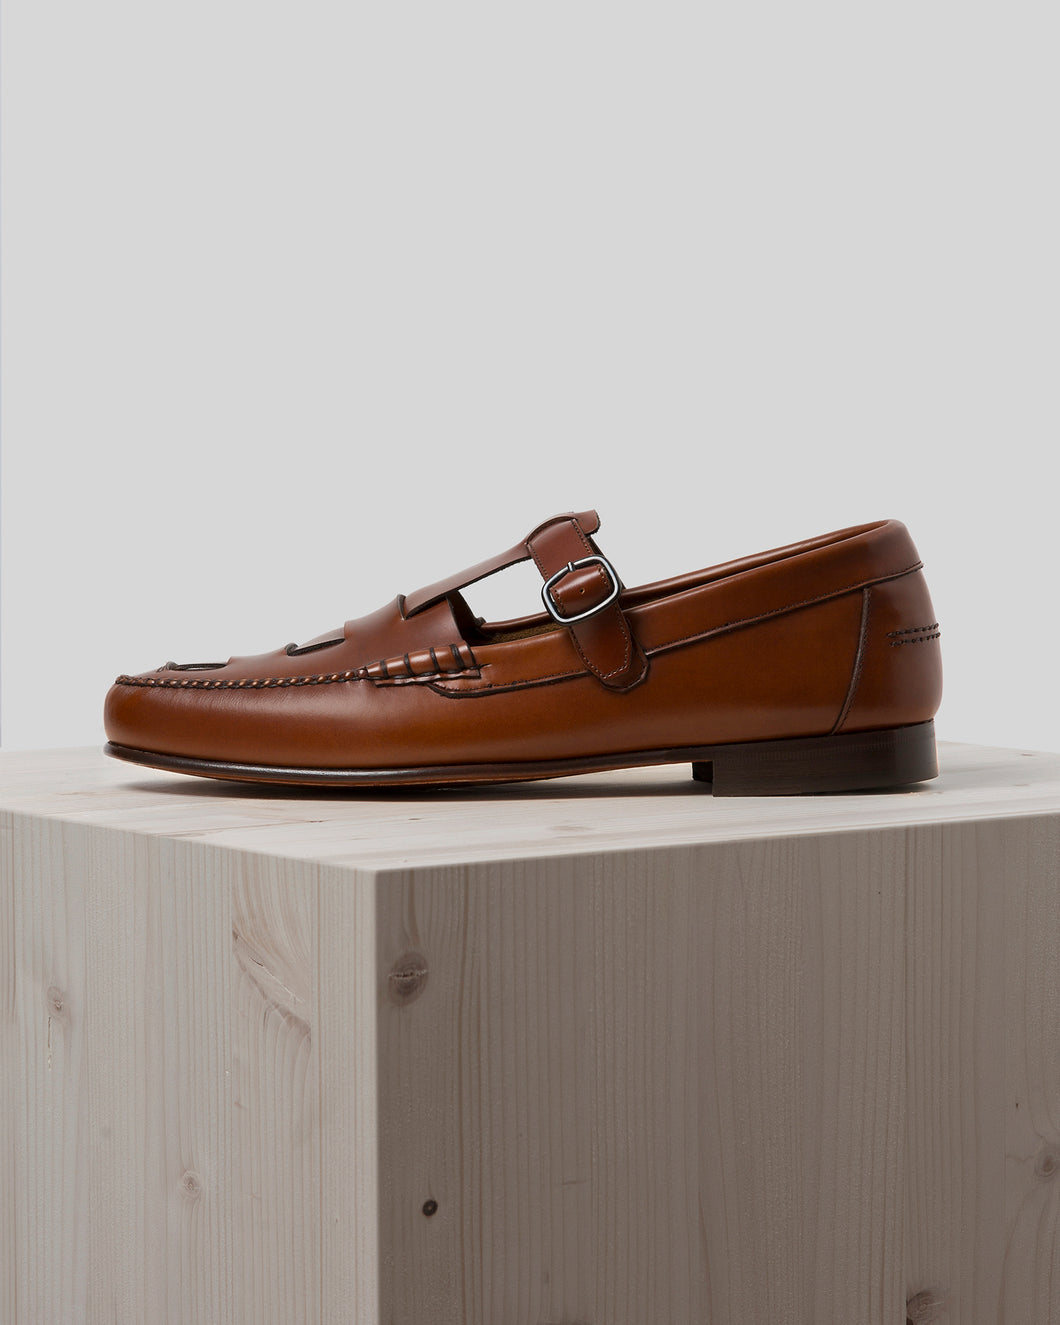 XESC - Men's  T-bar Loafer